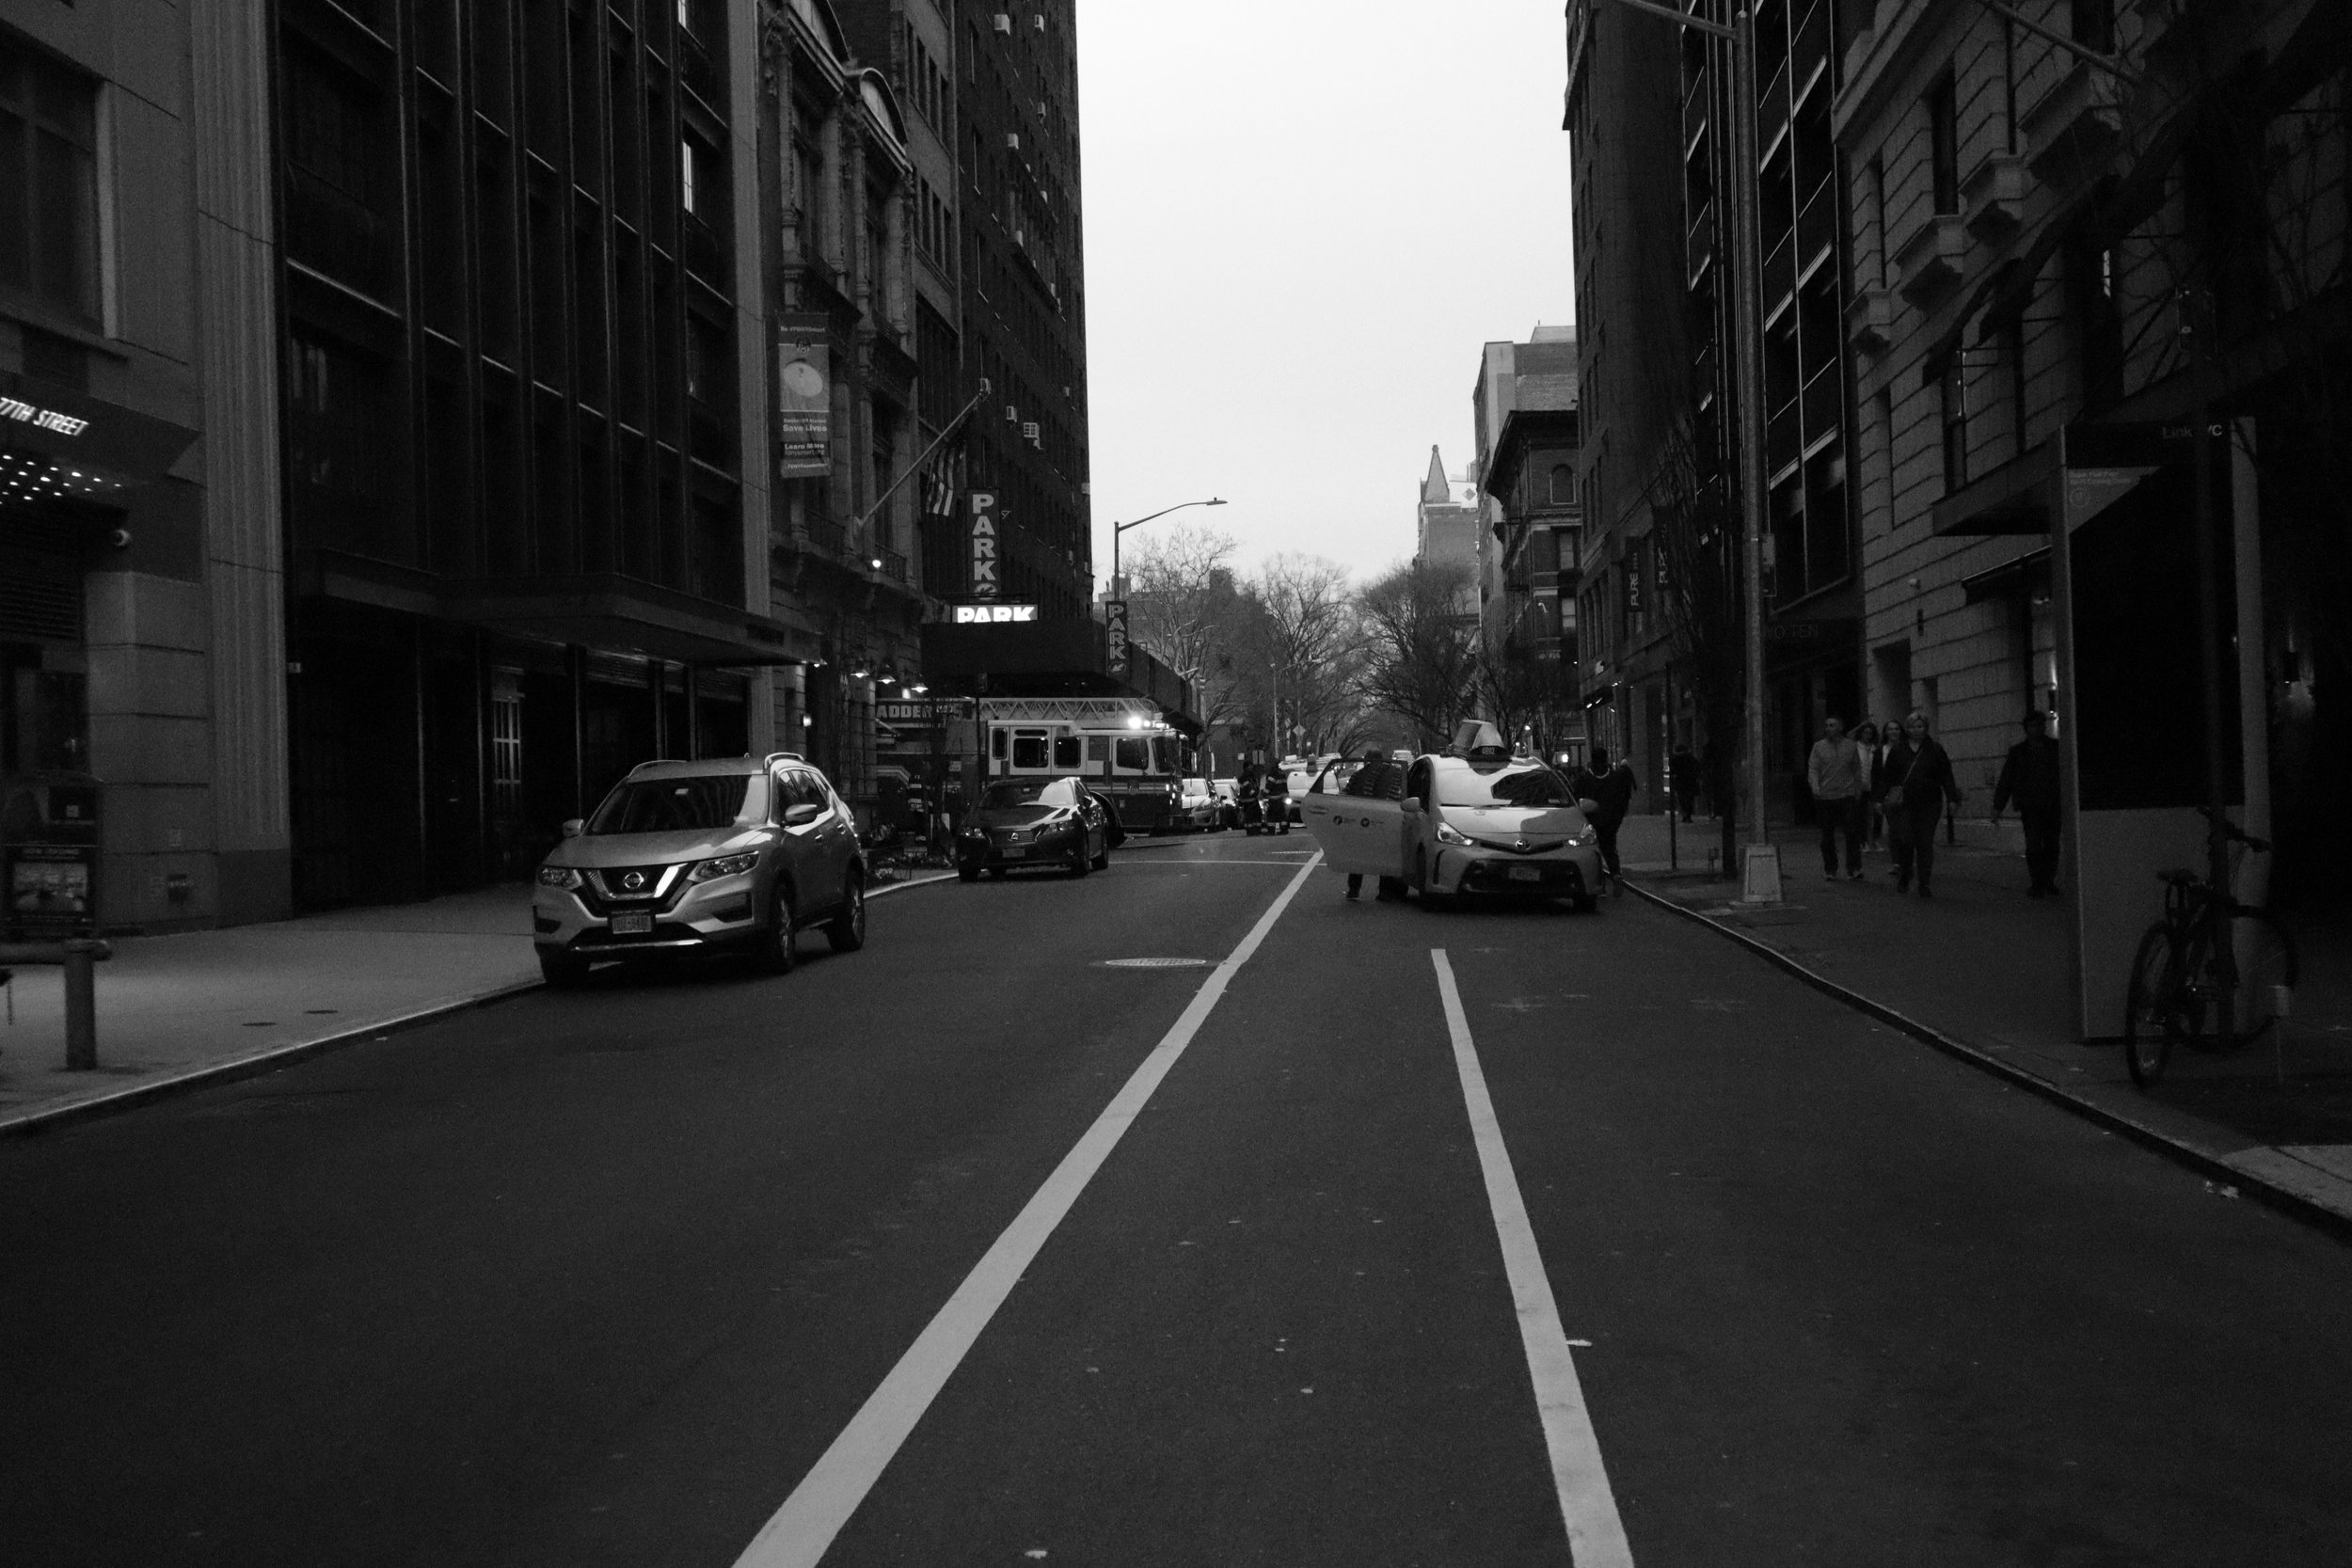 West 77th Street in New York